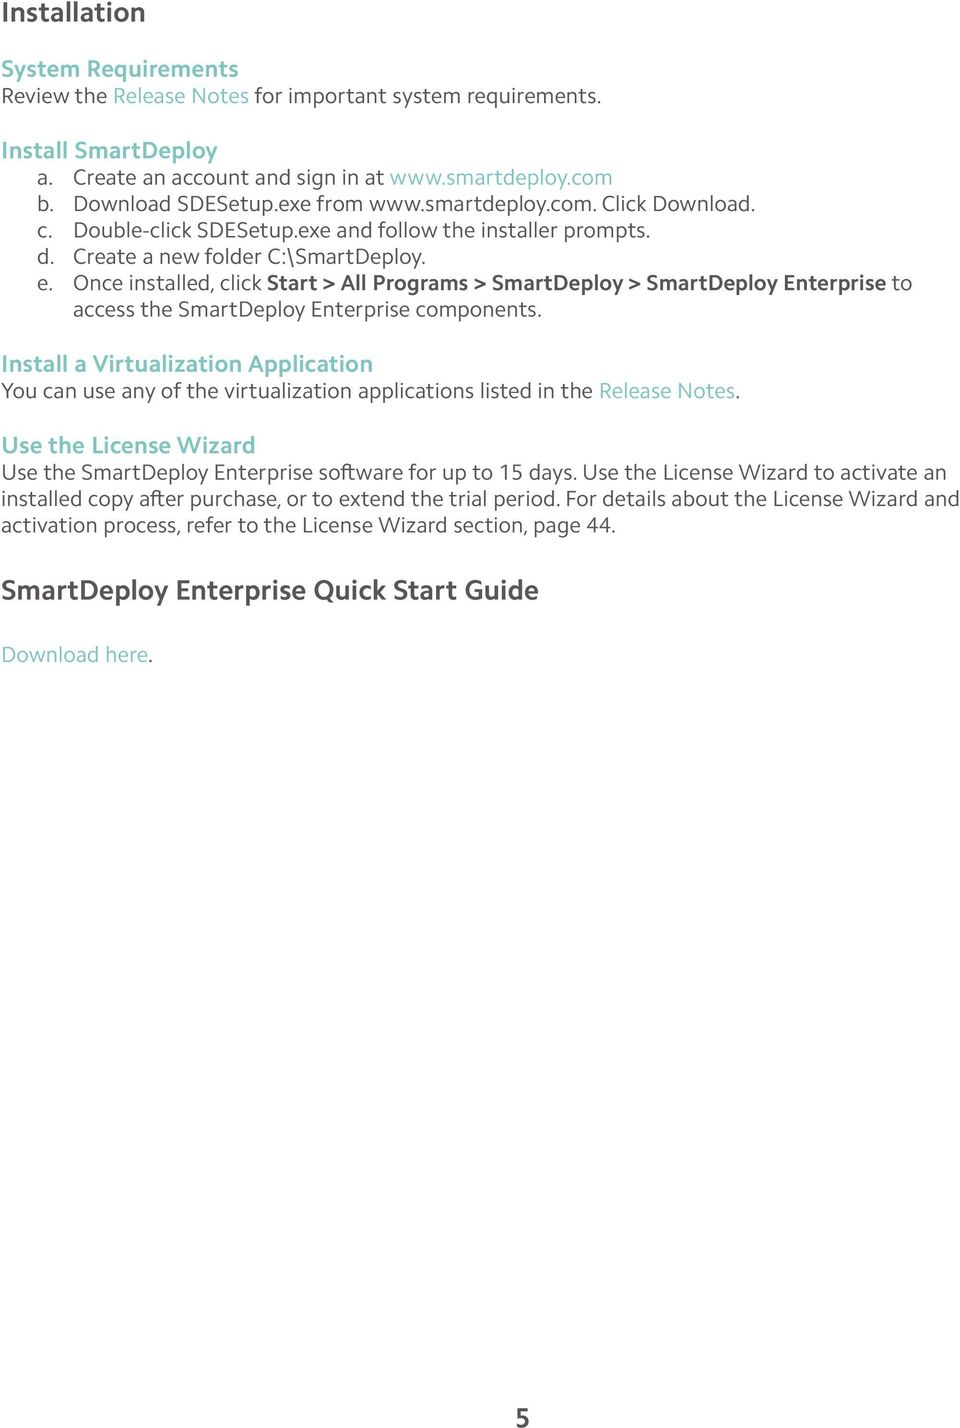 Once installed, click Start > All Programs > SmartDeploy > SmartDeploy Enterprise to access the SmartDeploy Enterprise components.